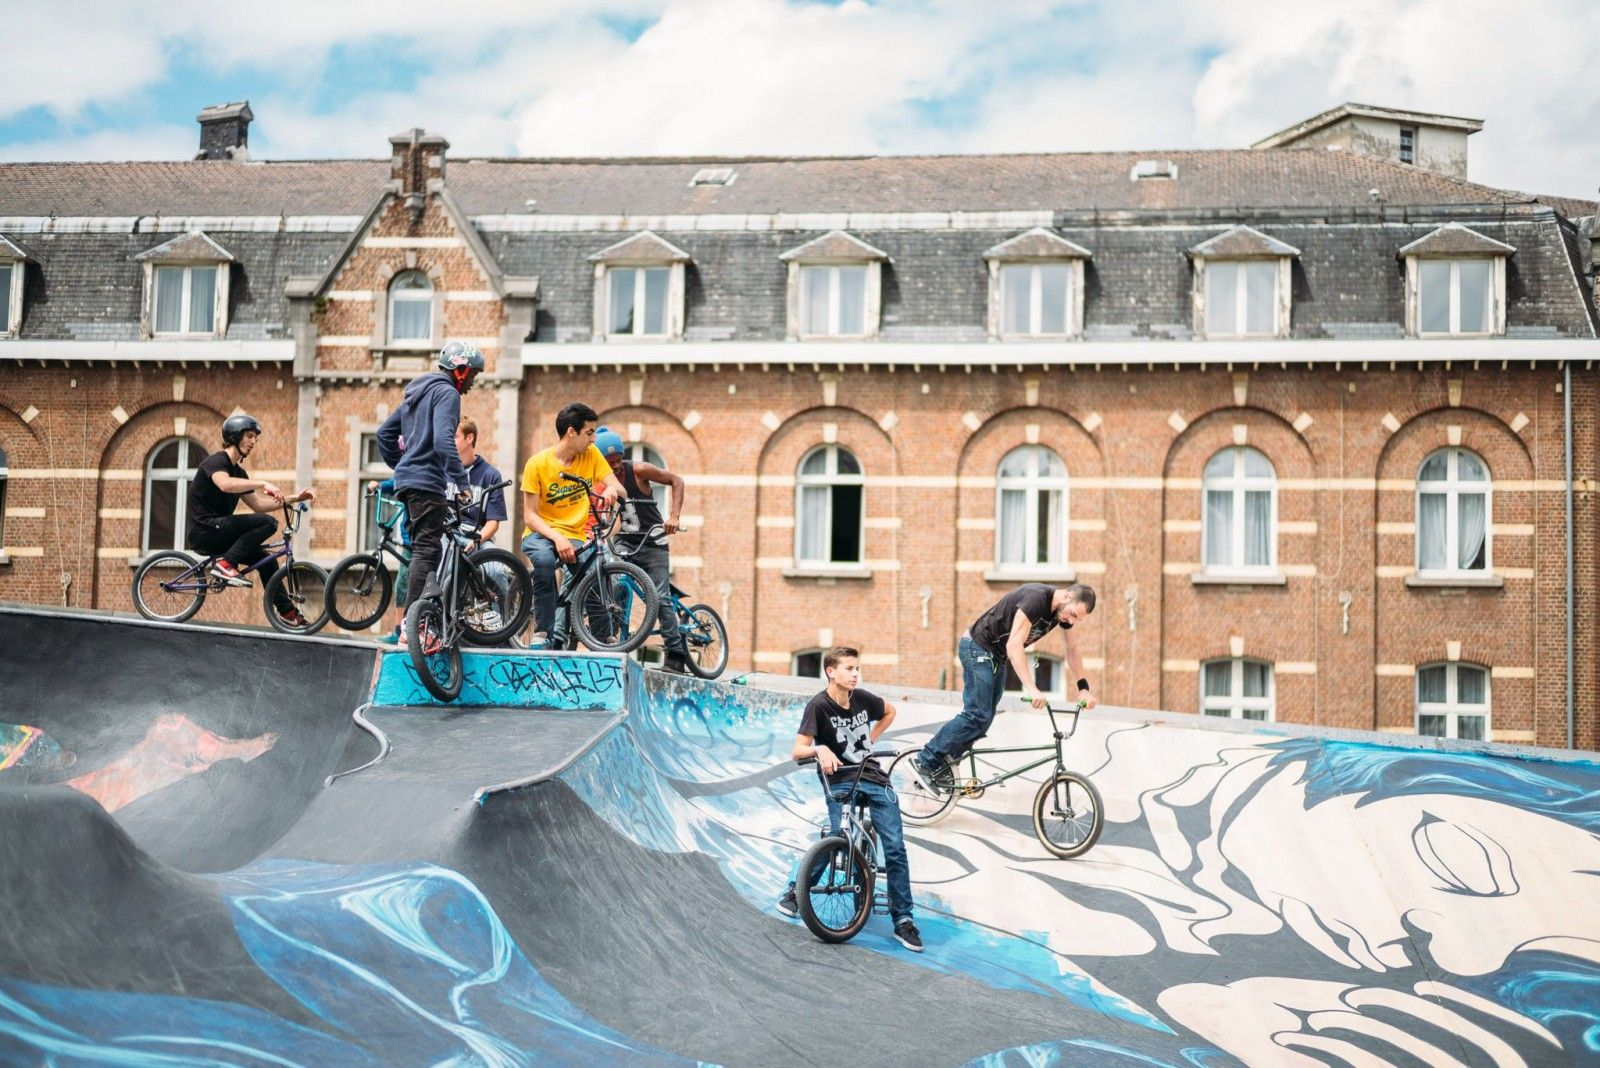 brussels_bmx_boys_group